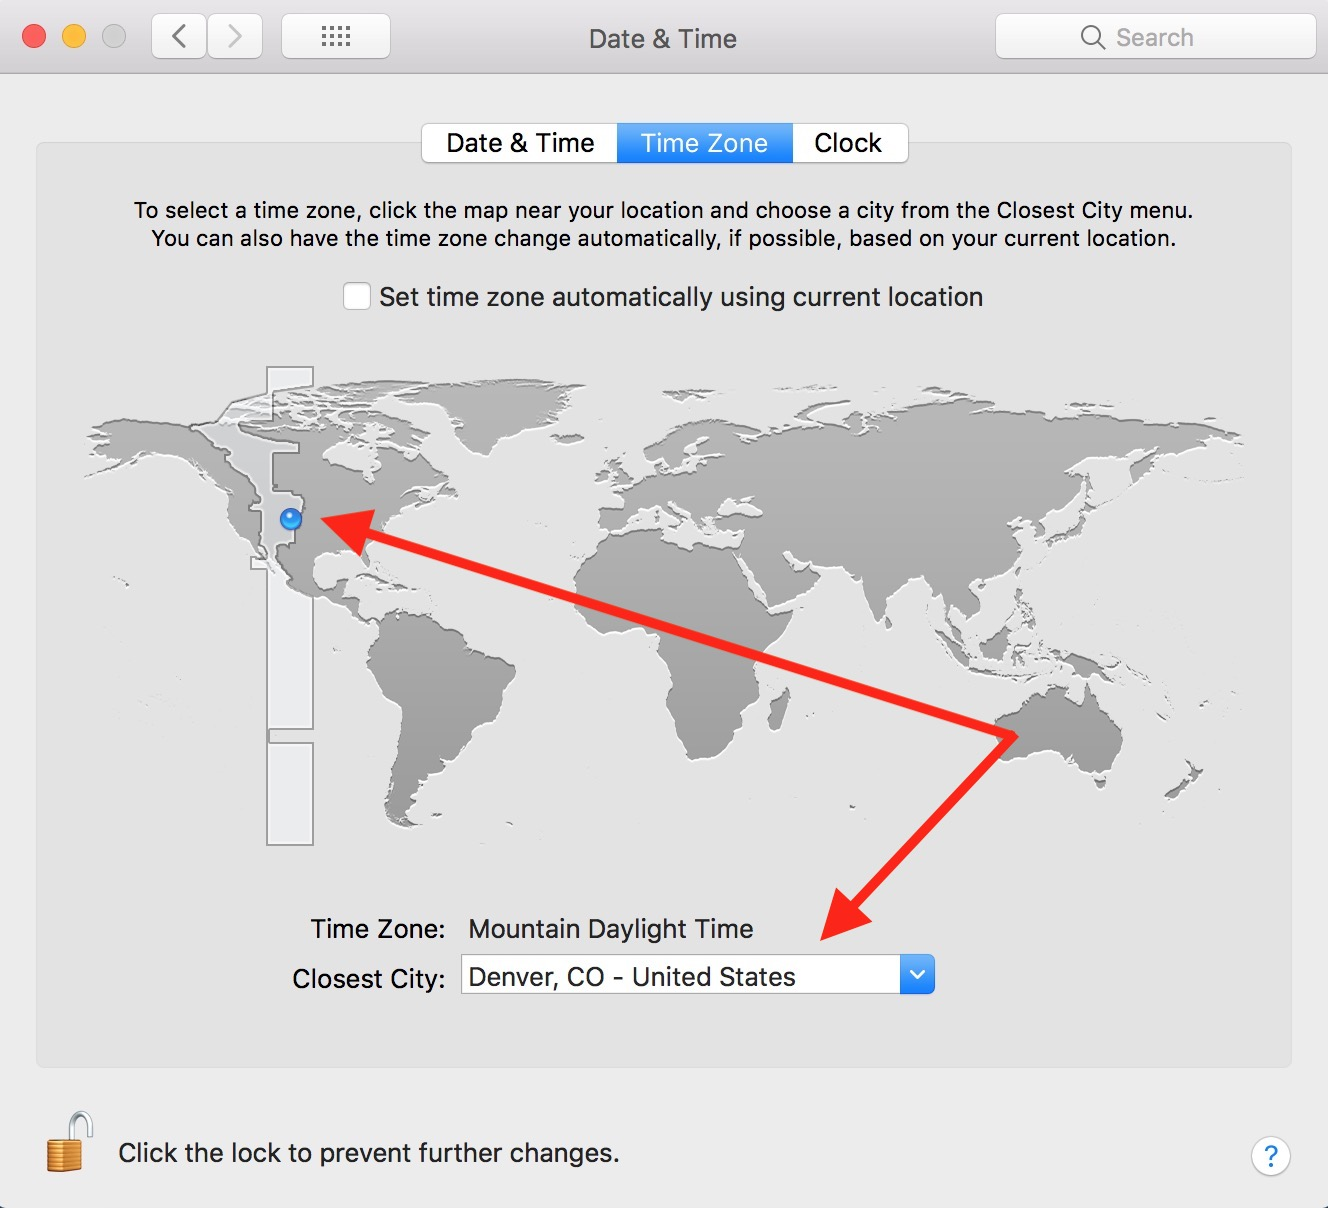 Find Correct City for Date & Time in Mac preferences